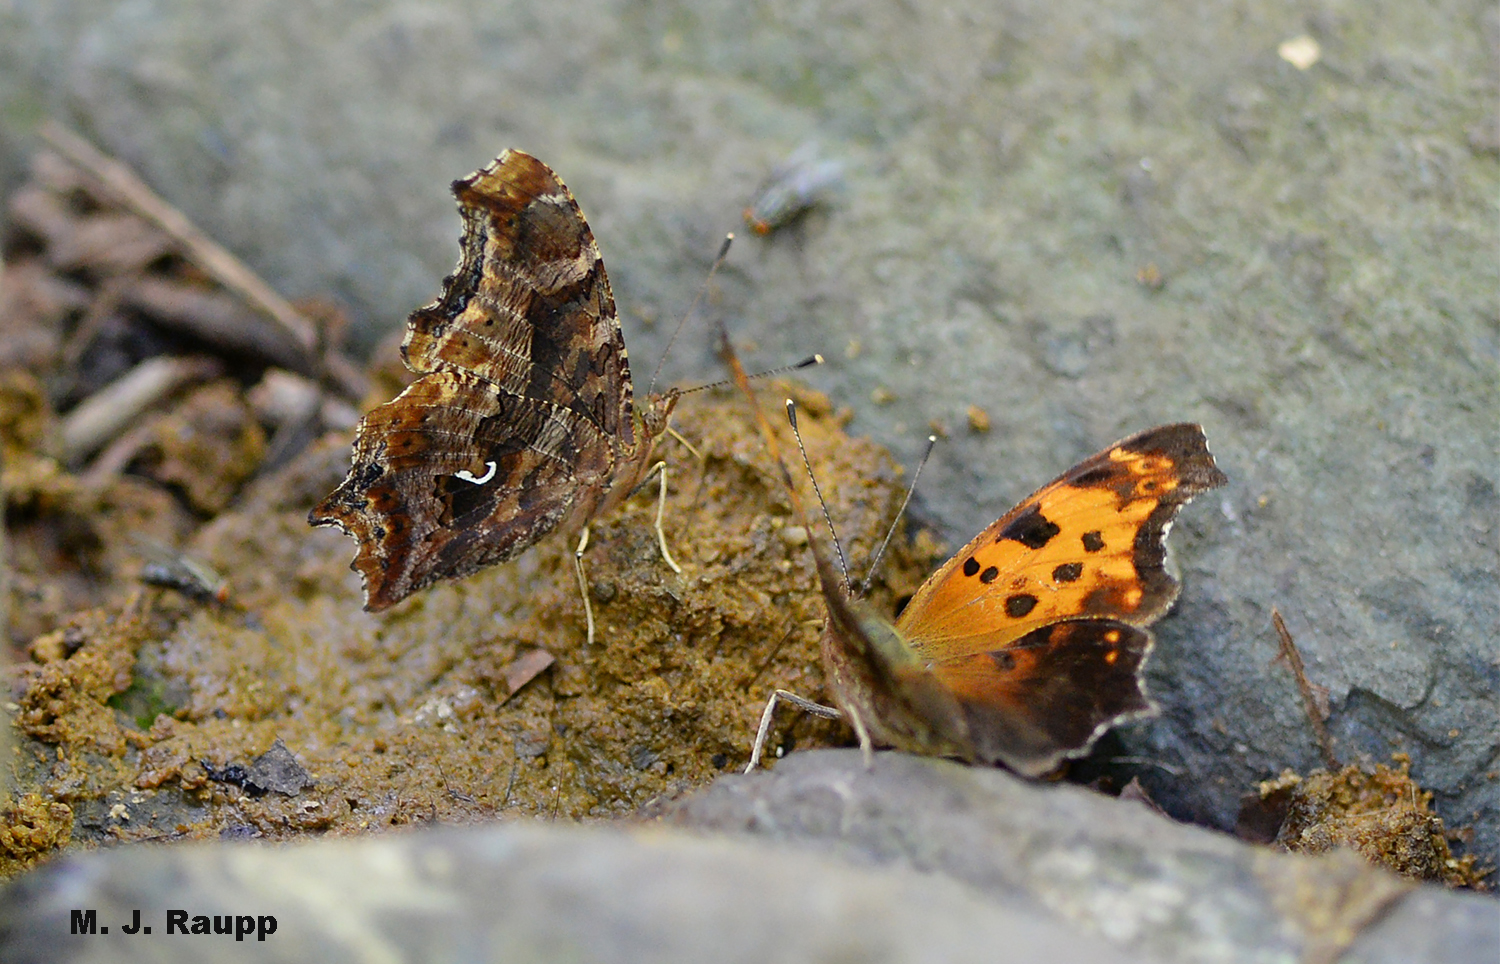 Angled wings with the mottled pattern of a dead leaf on the underside help the comma butterfly escape the searching eyes of predators. Note the bright comma-shaped mark on the hindwing that gives the comma its name.